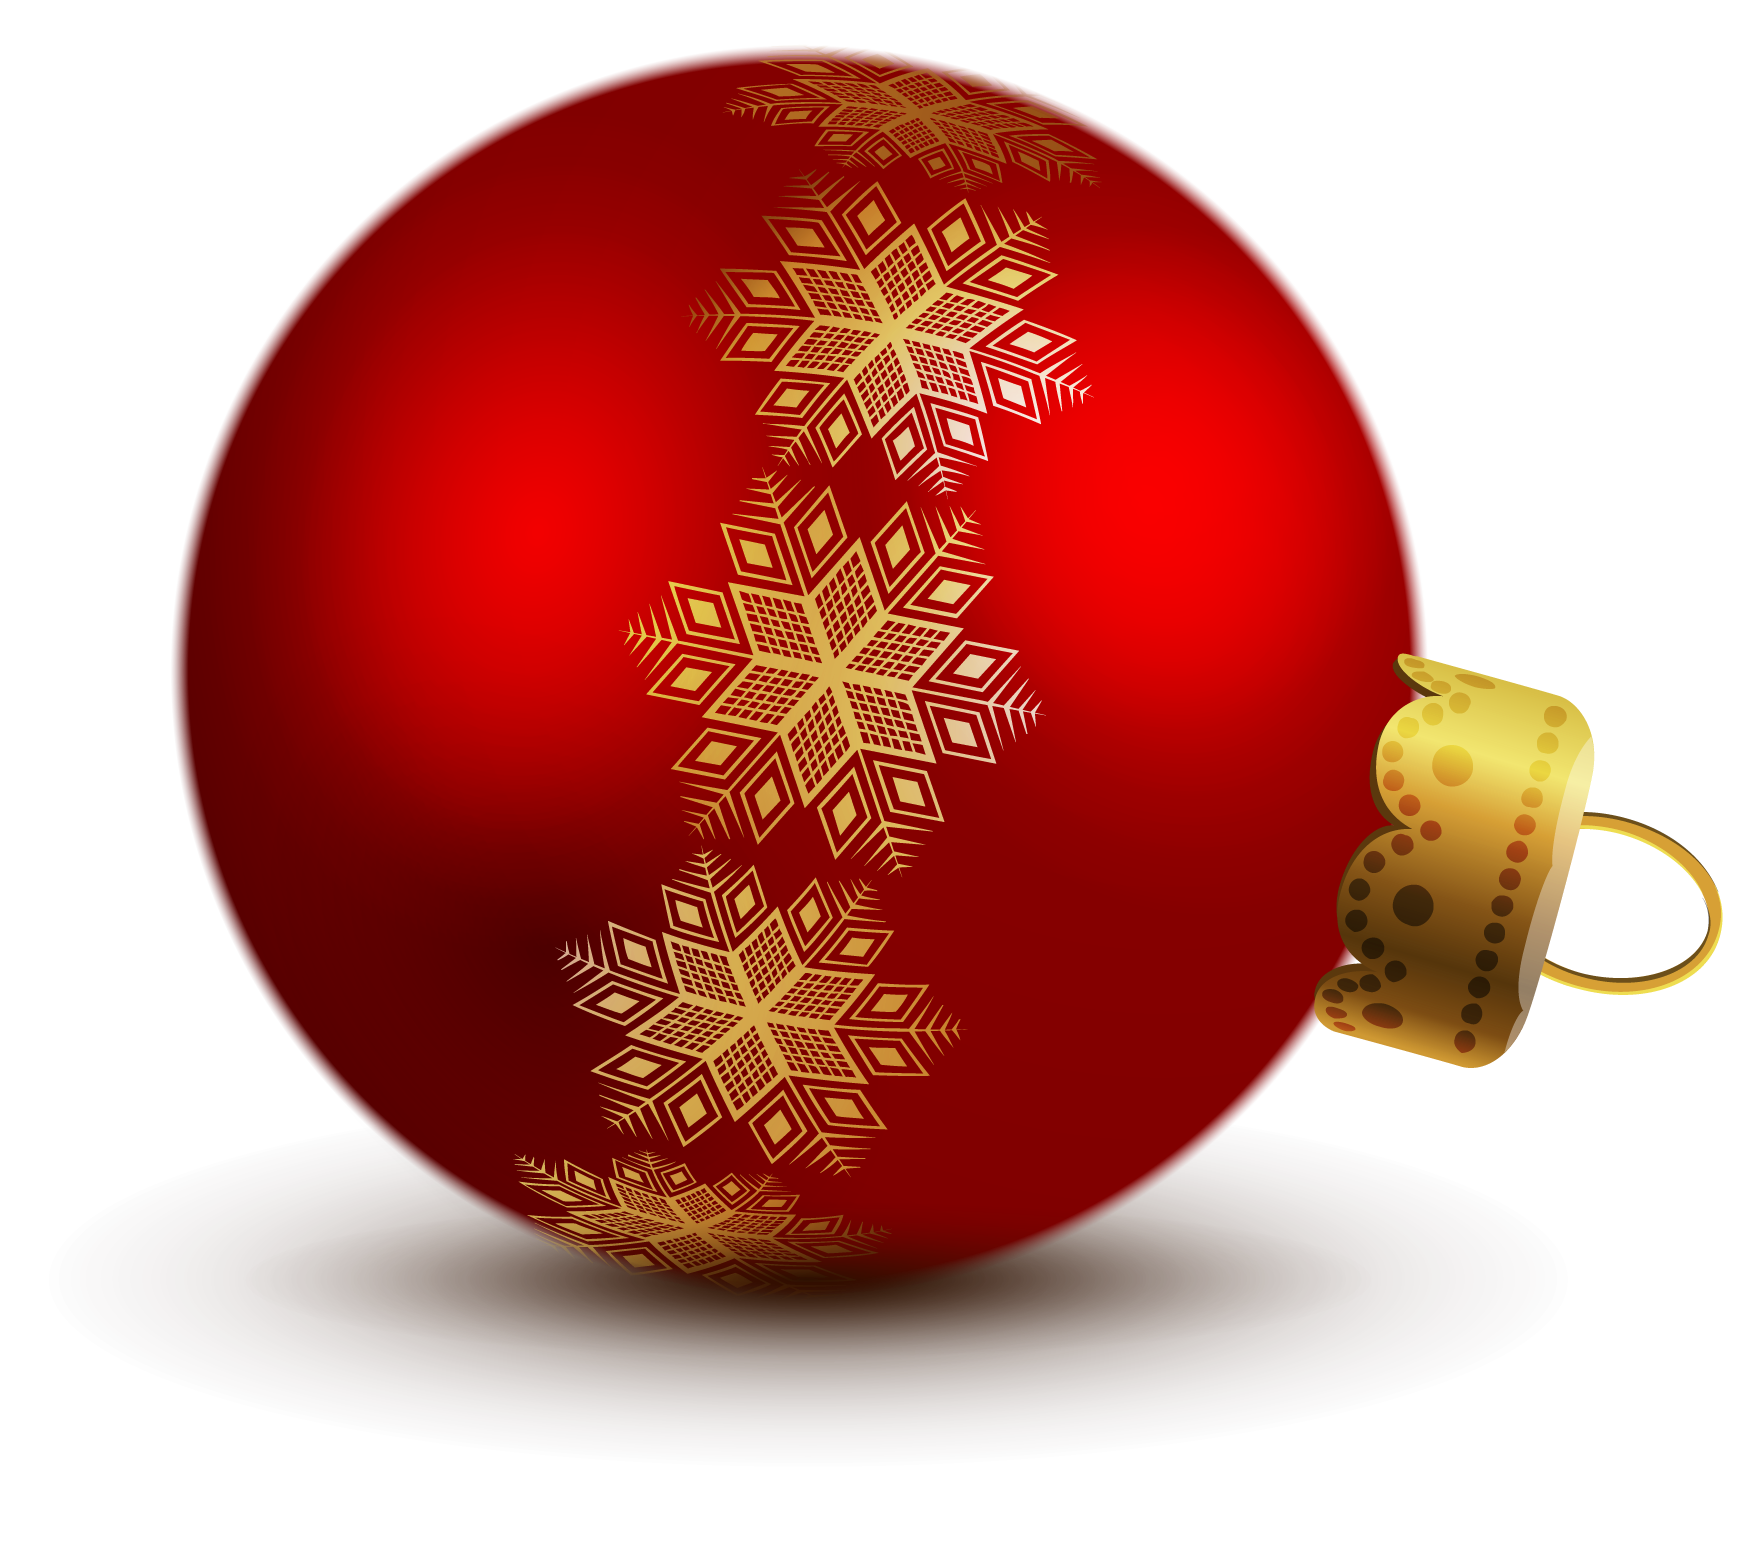 Red christmas ornaments png. Transparent ball clipart holiday